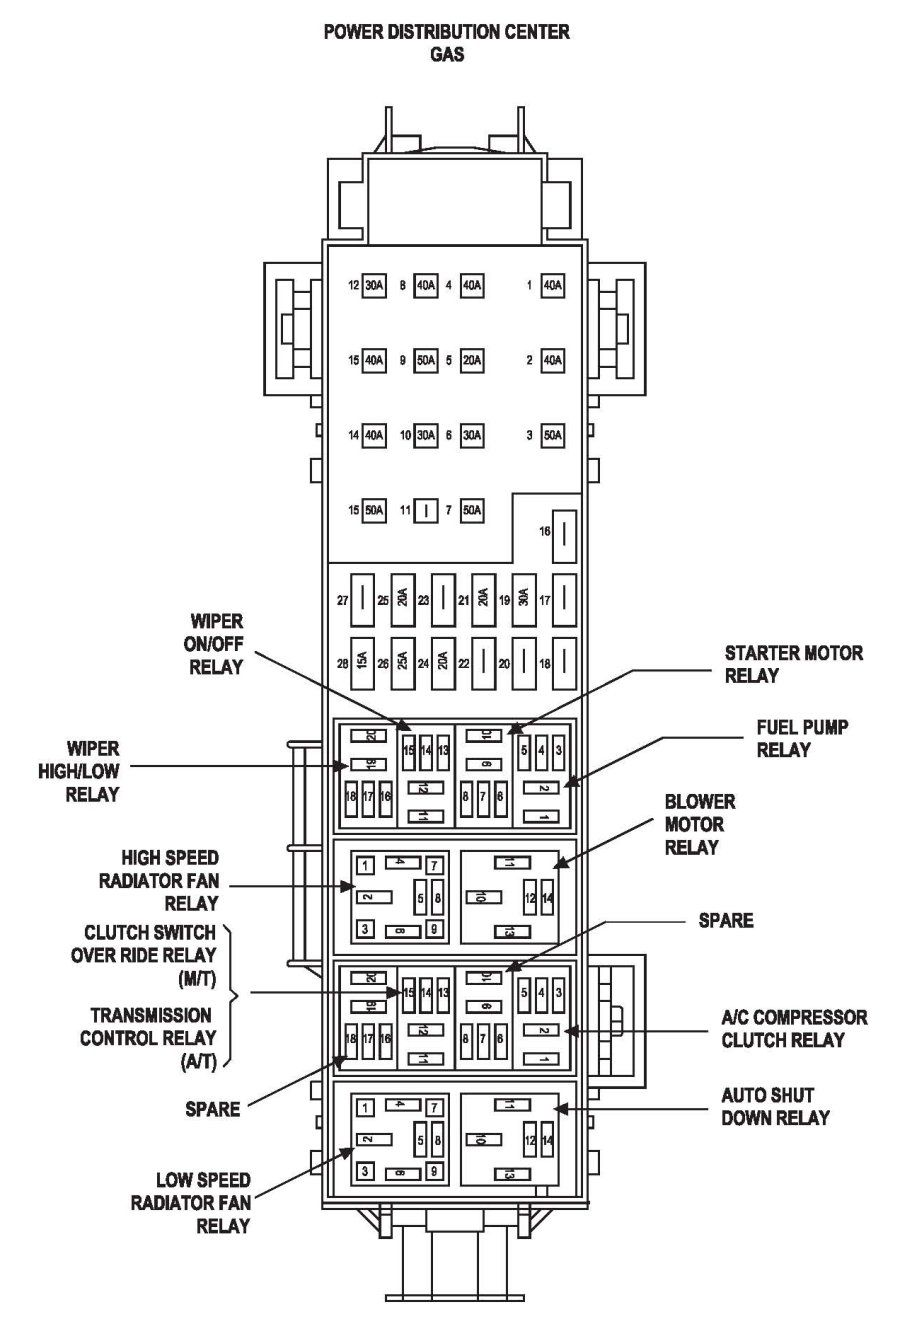 b3536c3739783eb19f827744cc42c3c4 jeep liberty fuse box diagram image details jeep liberty Circuit Breaker Box at soozxer.org